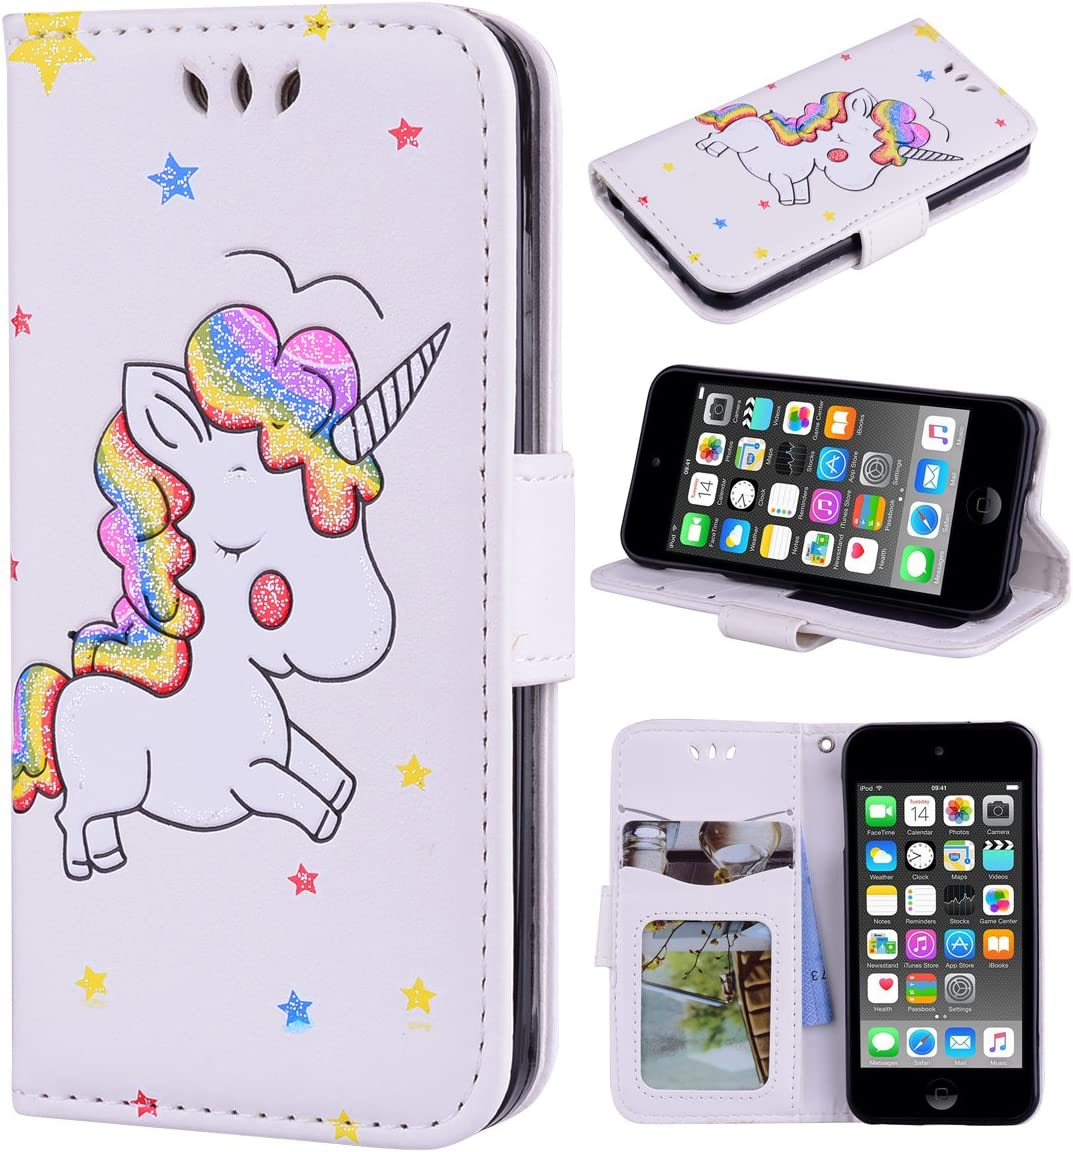 Ranyi iPod Touch 7 Case, iPod Touch 6 Case, iPod Touch 5 Case, Cute 3D Glitter Bling Unicorn Embossed [Flip Magnetic Wallet] PU Leather Folio Wallet Case for iPod Touch 5 6 7th Generation (White)